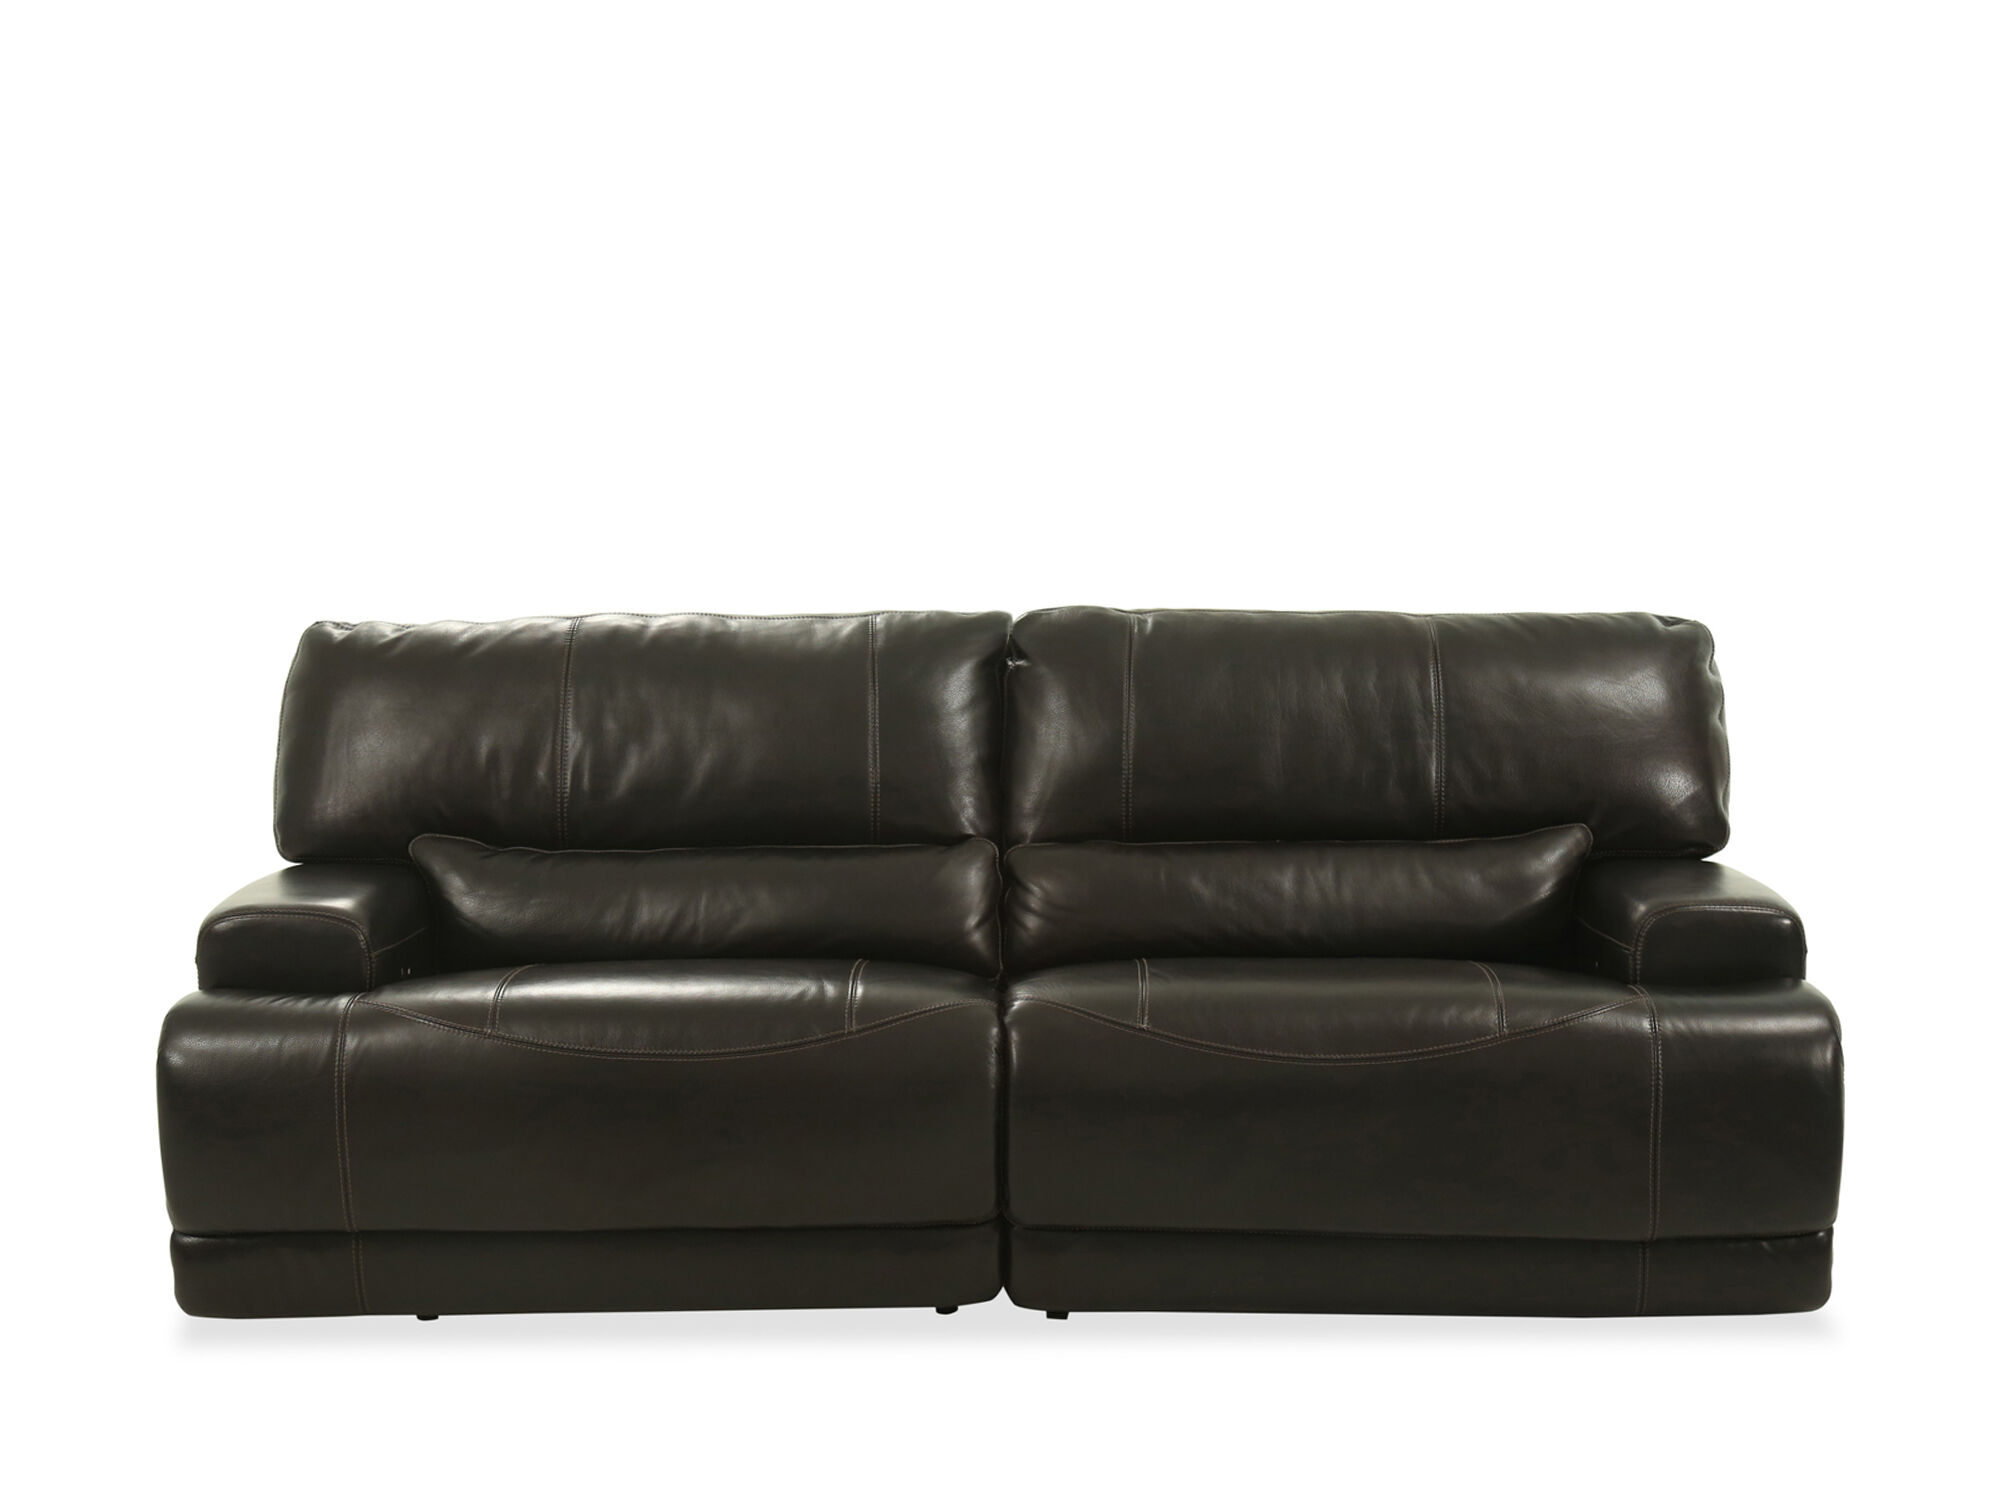 Mathis Brothers Leather Sofas Sofas Couches Mathis